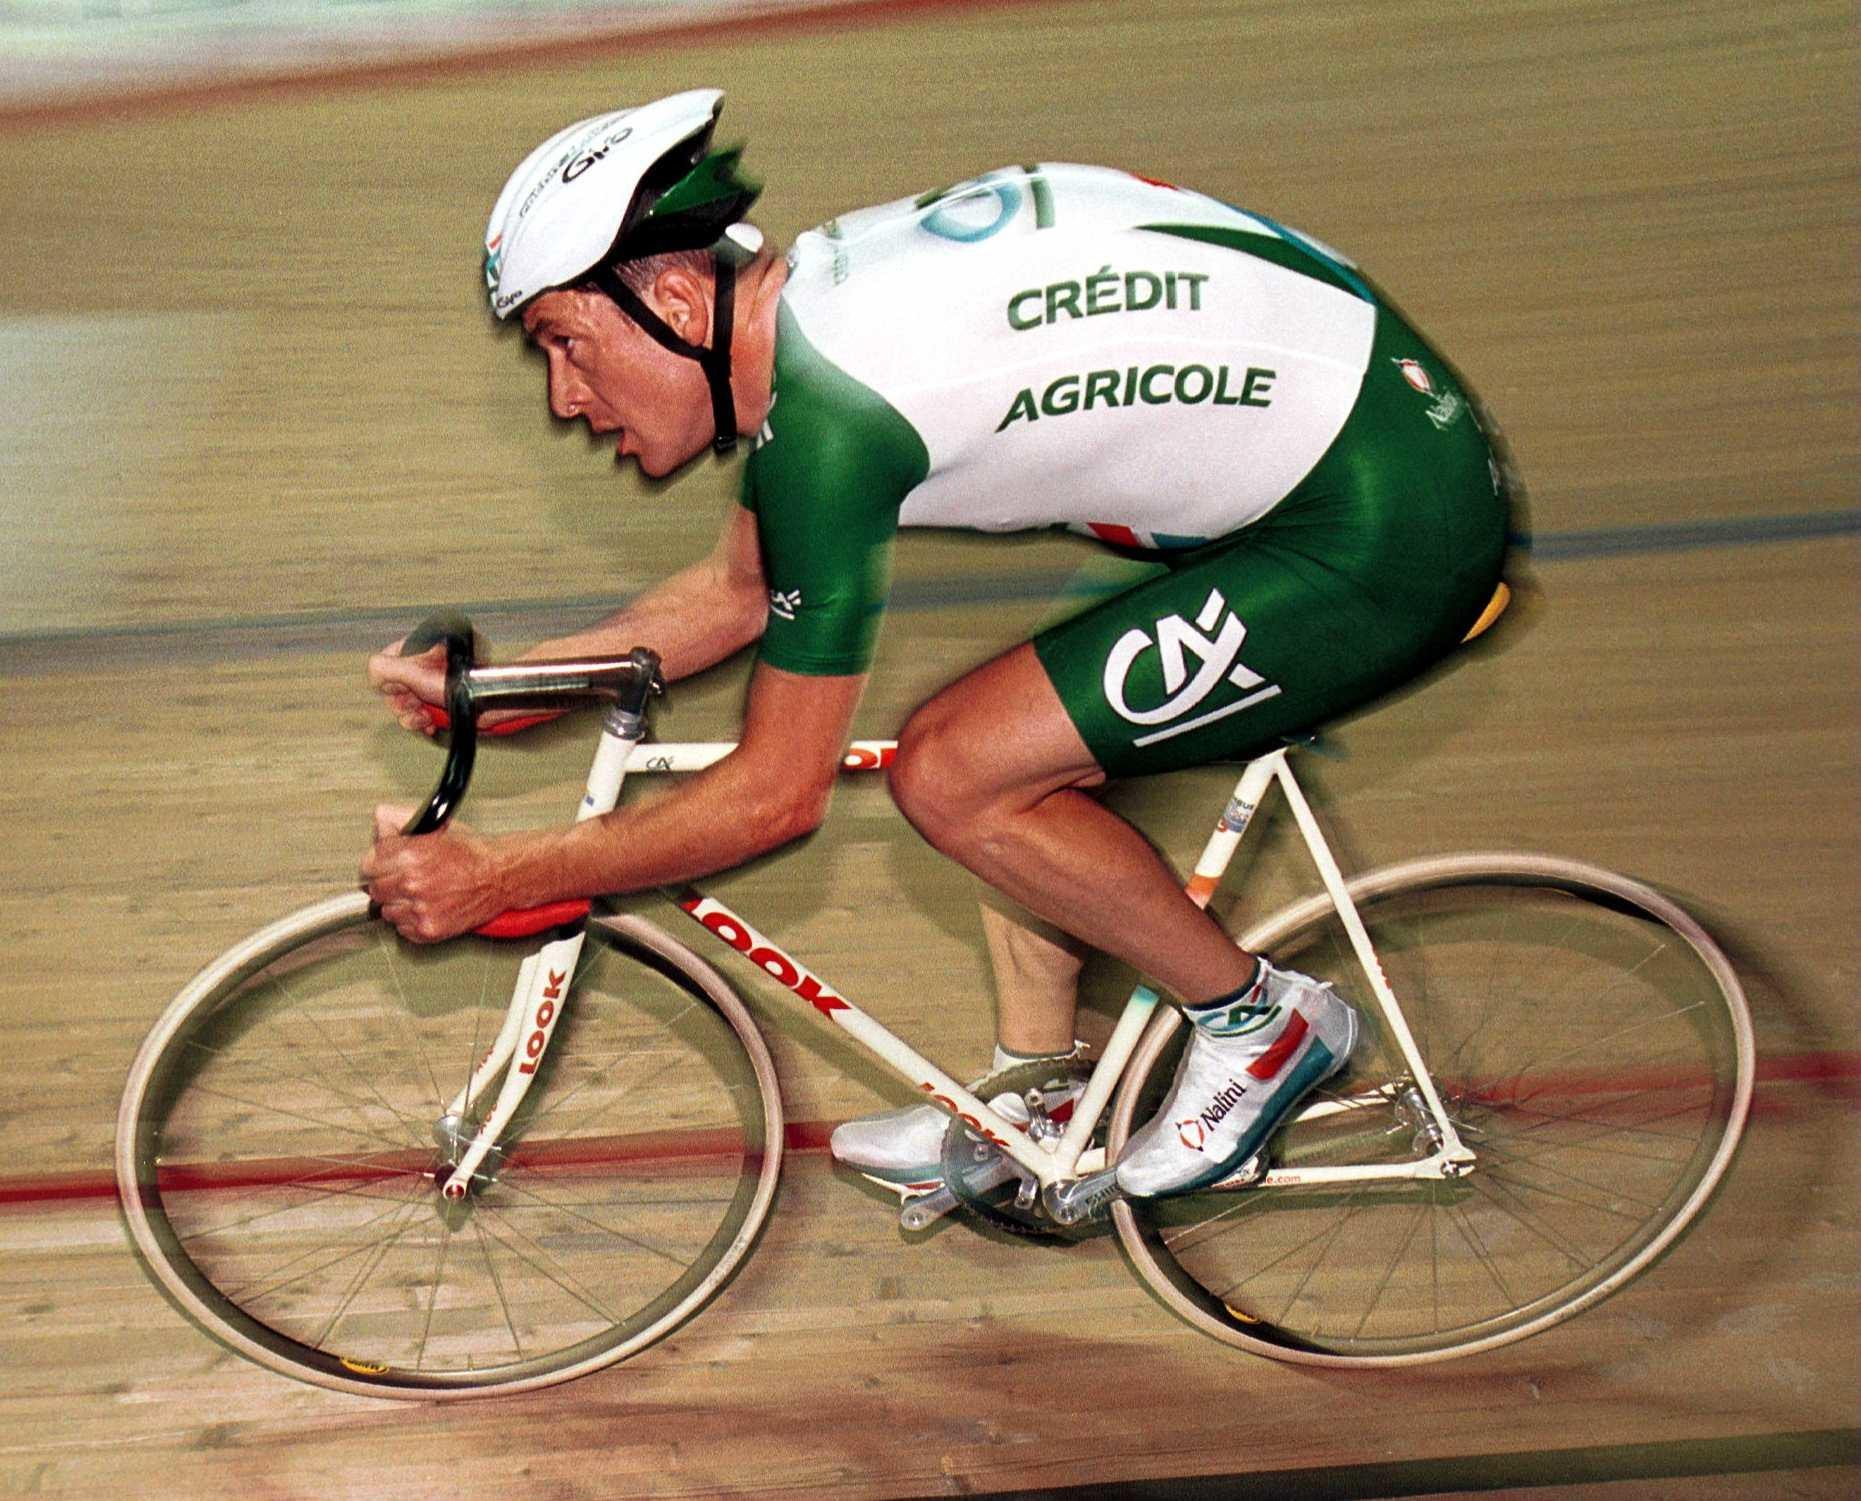 Brit Chris Boardman sets a new hour record on October 27, 2000 while racing for Roger Legeay's Credit Agricole team.